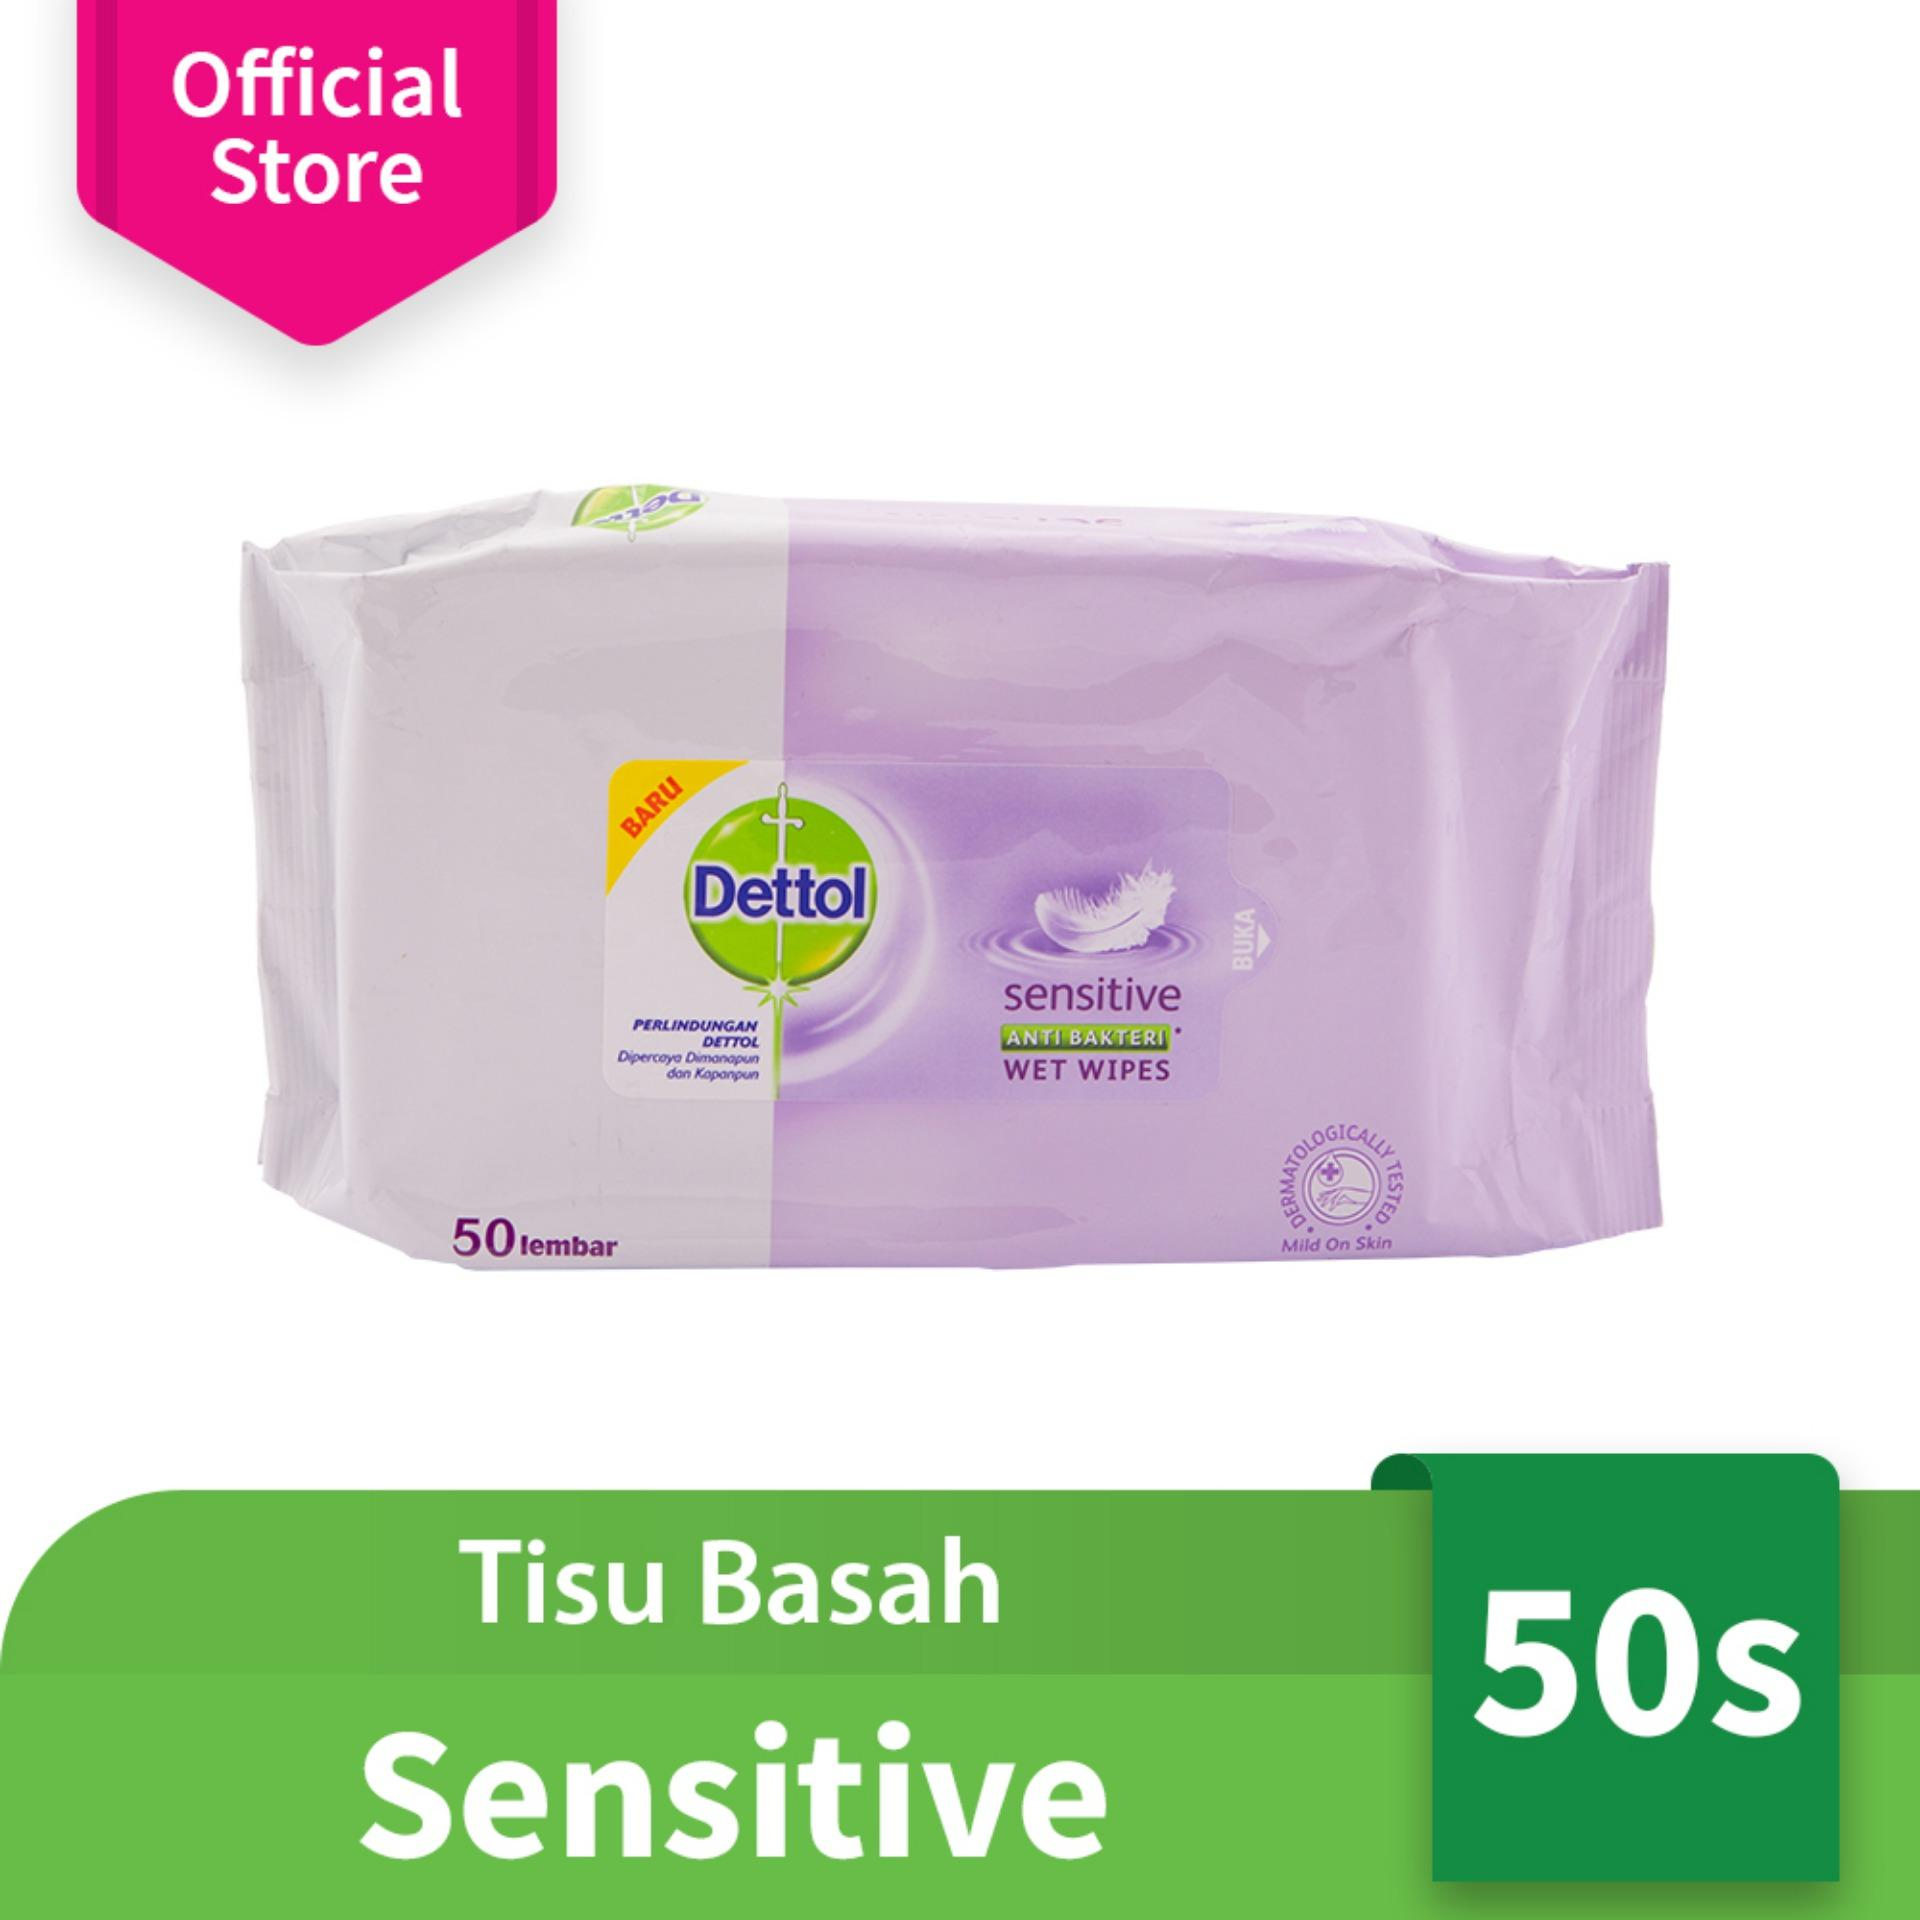 Fitur Softies Wipes Tissue Basah Alcohol Free Ada 3 Variant Isi 20 Cusson Tssue Dettol Sensitive 50 Lembar Tisu Anti Kuman